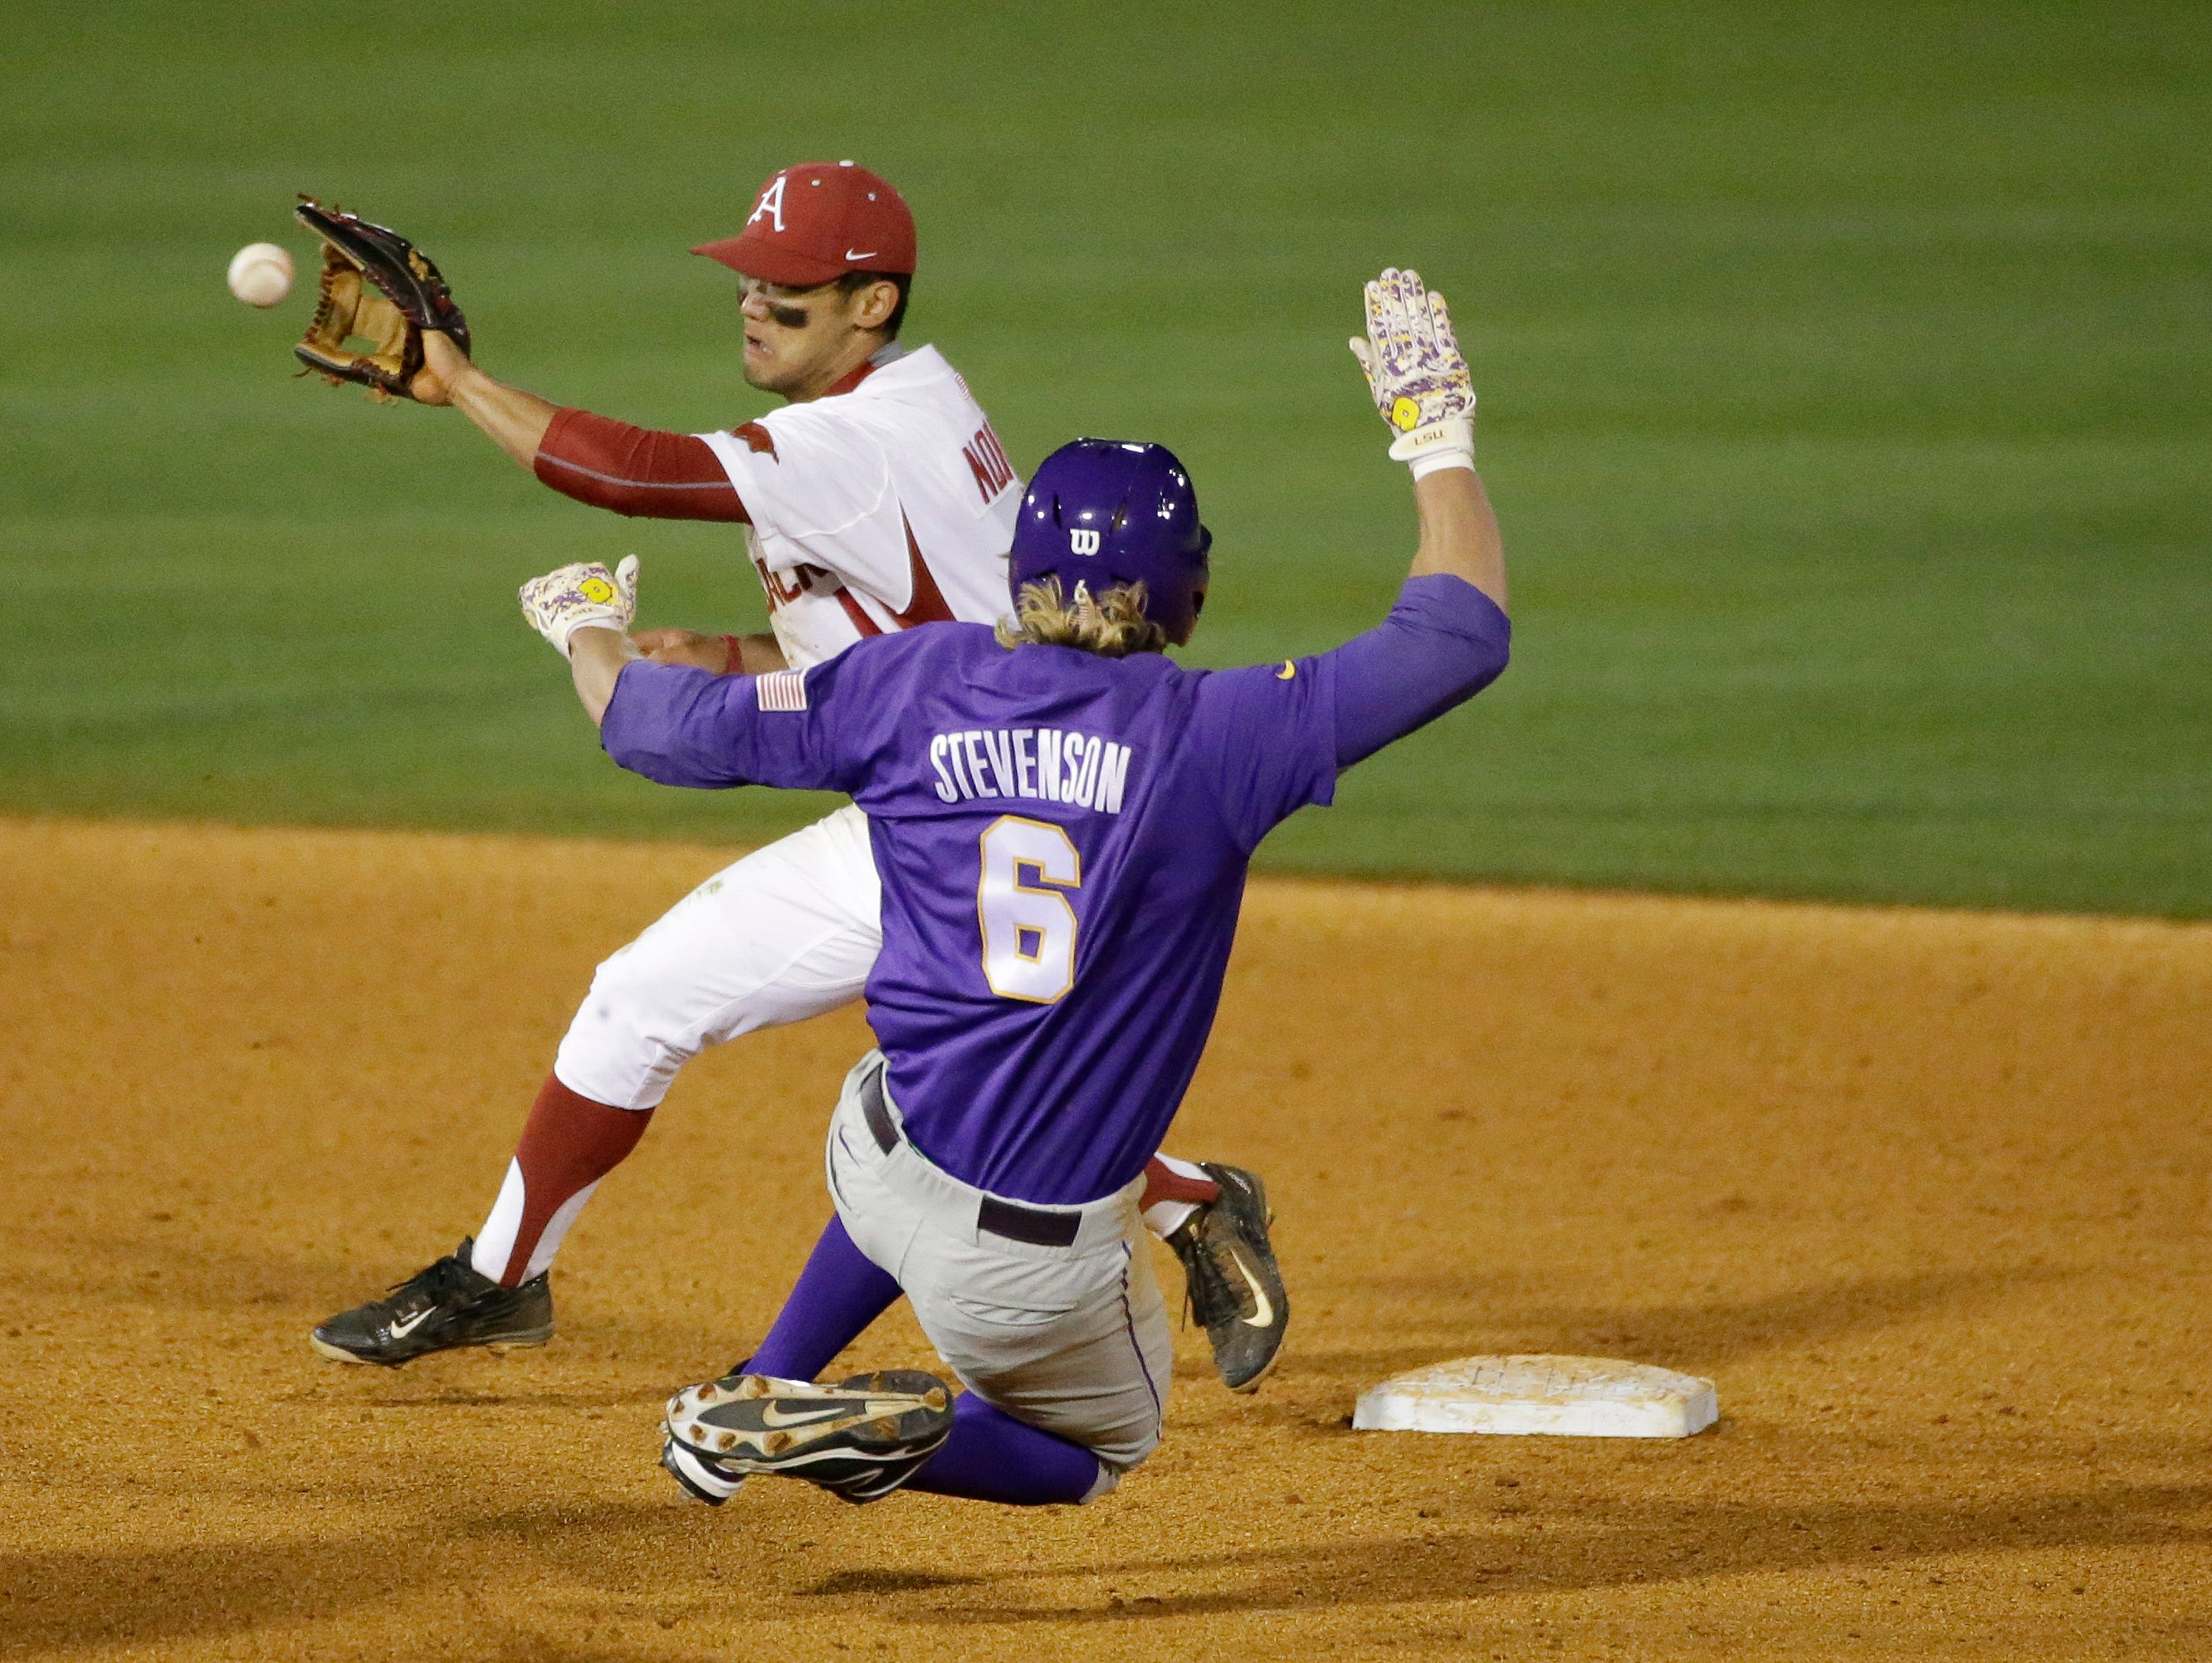 Arkansas' Rick Nomura, left, tags out LSU's Andrew Stevenson during the seventh inning of a Southeastern Conference tournament game at the Hoover Met on Thursday in Hoover, Ala.